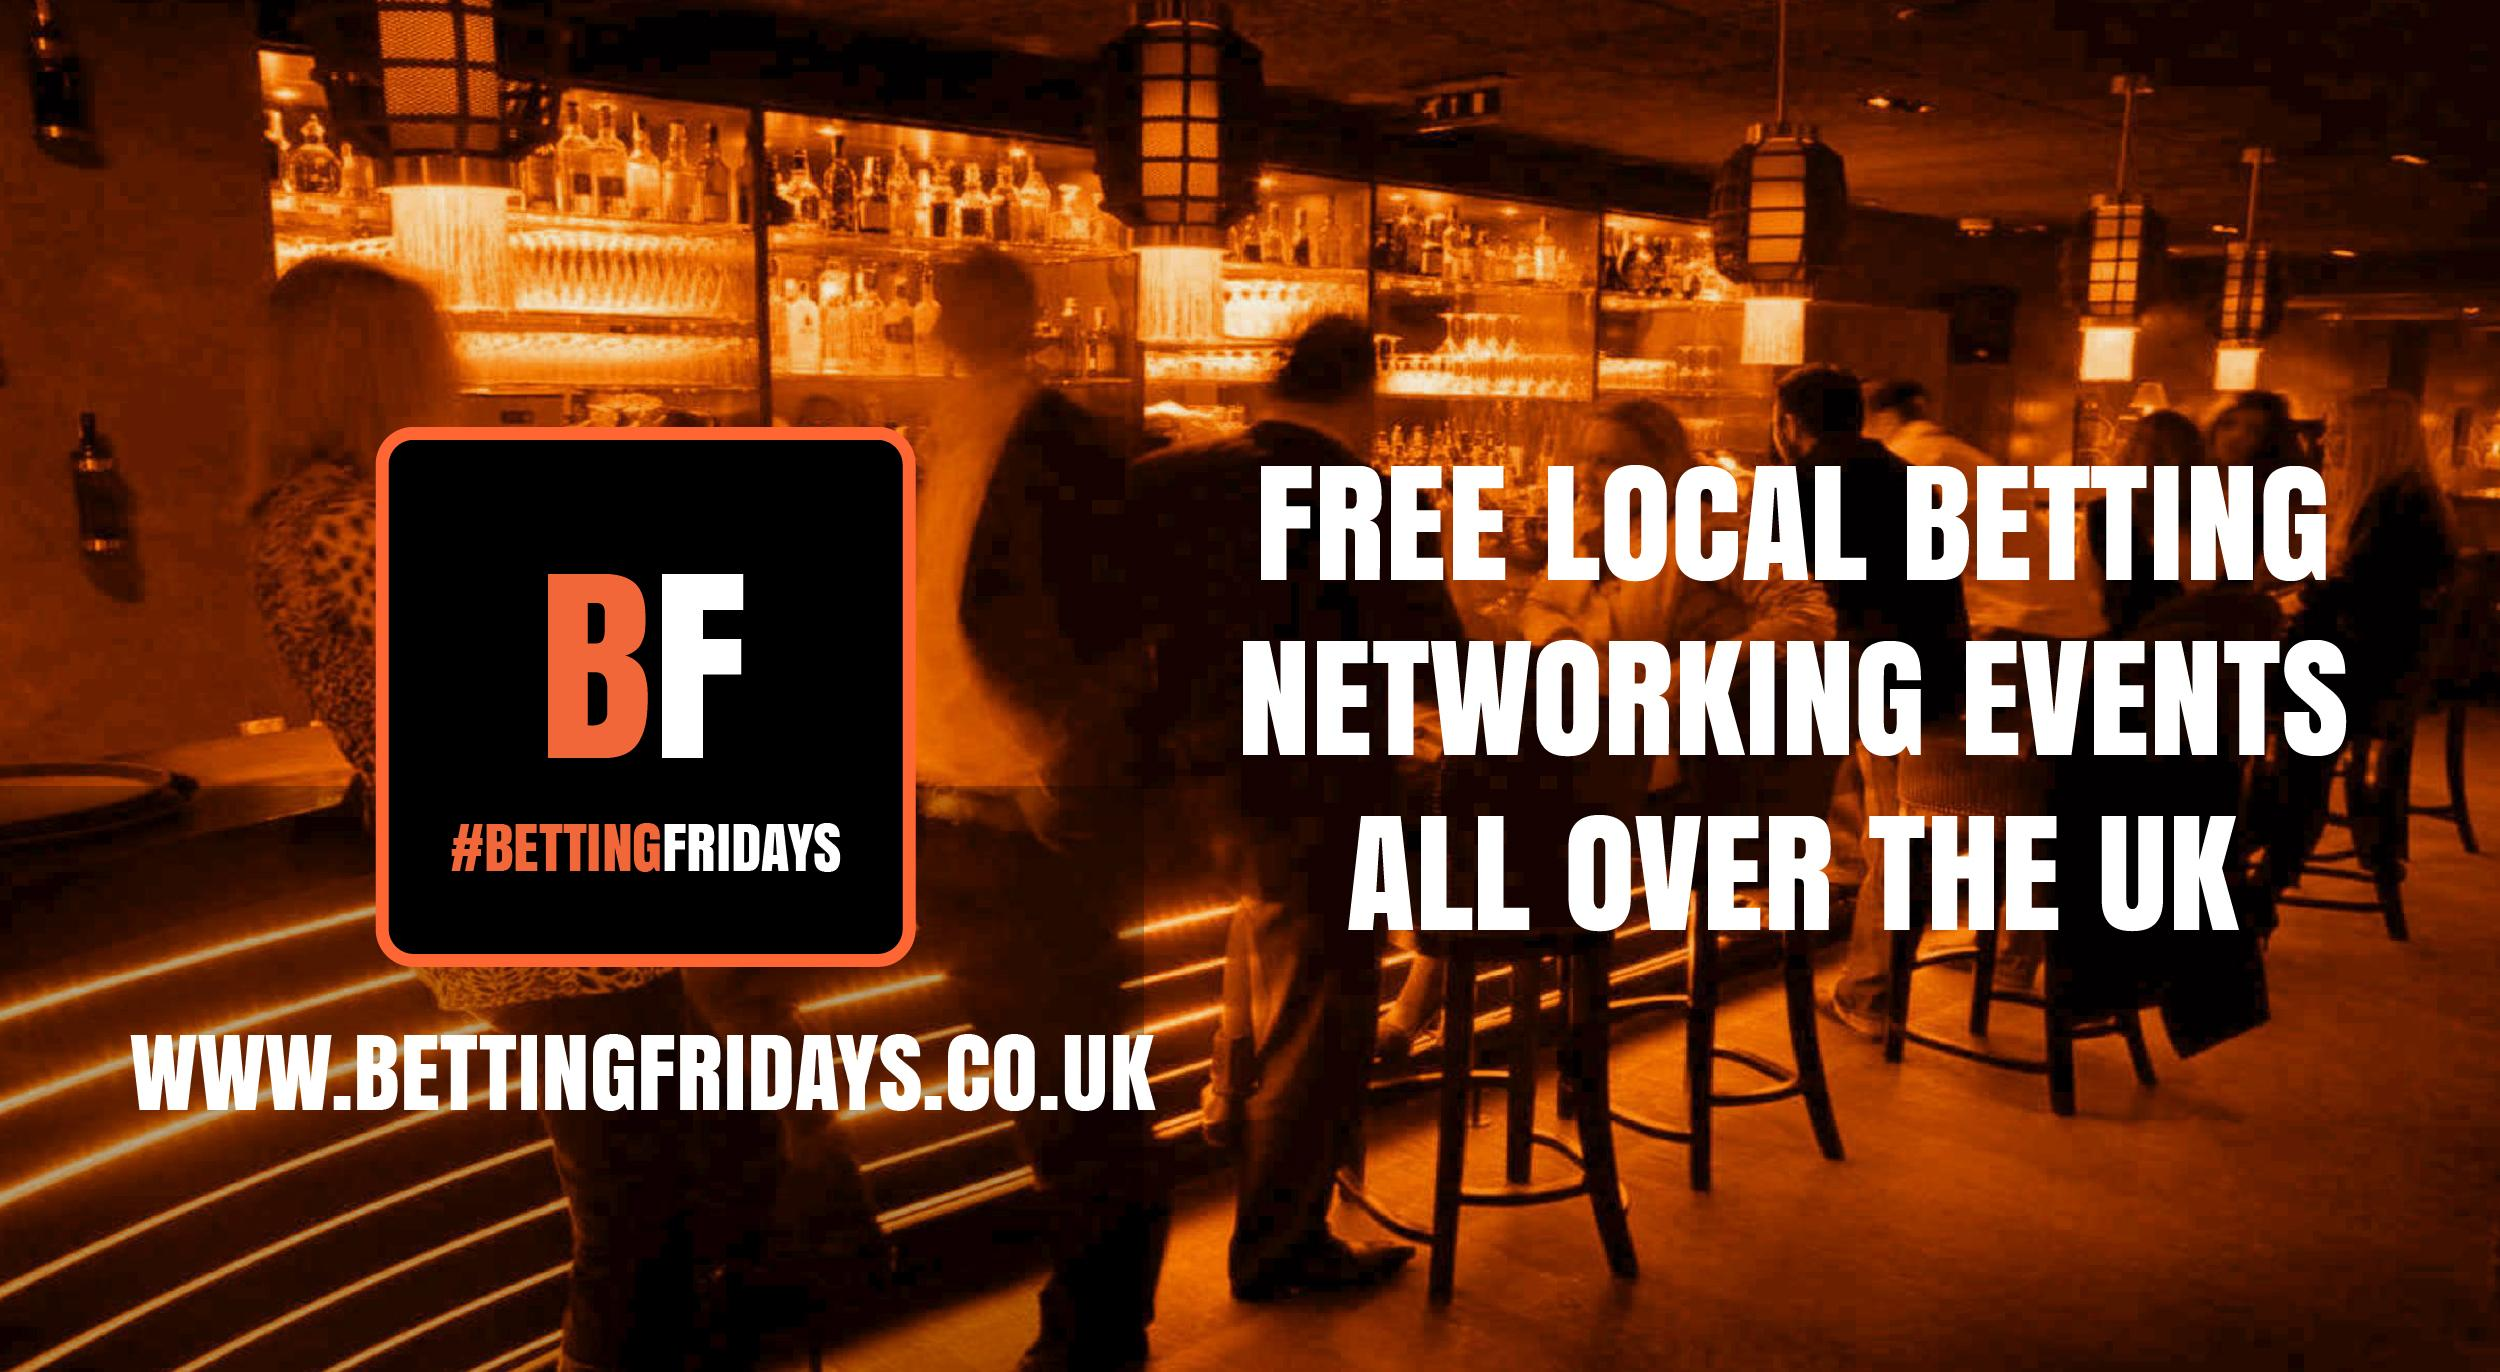 Betting Fridays! Free betting networking event in Widnes